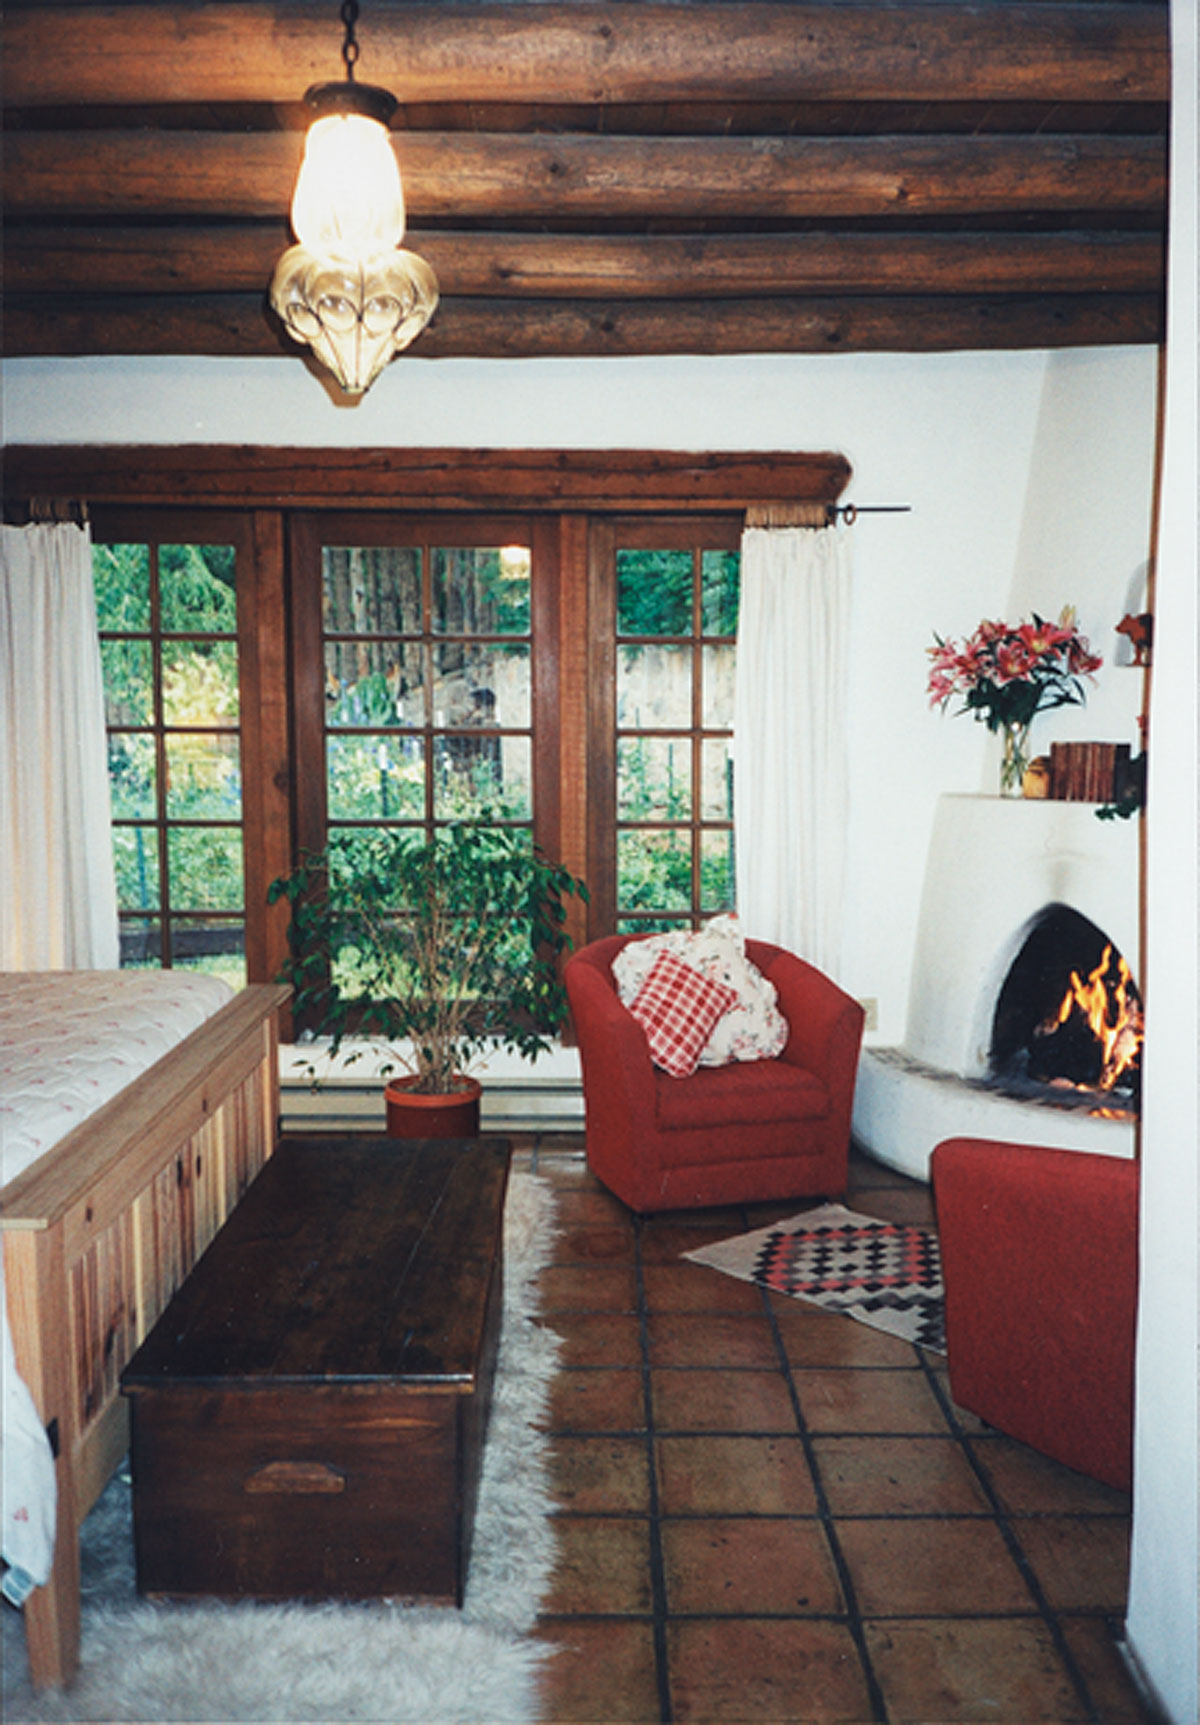 B&B suite bedroom with fireplace and view to garden